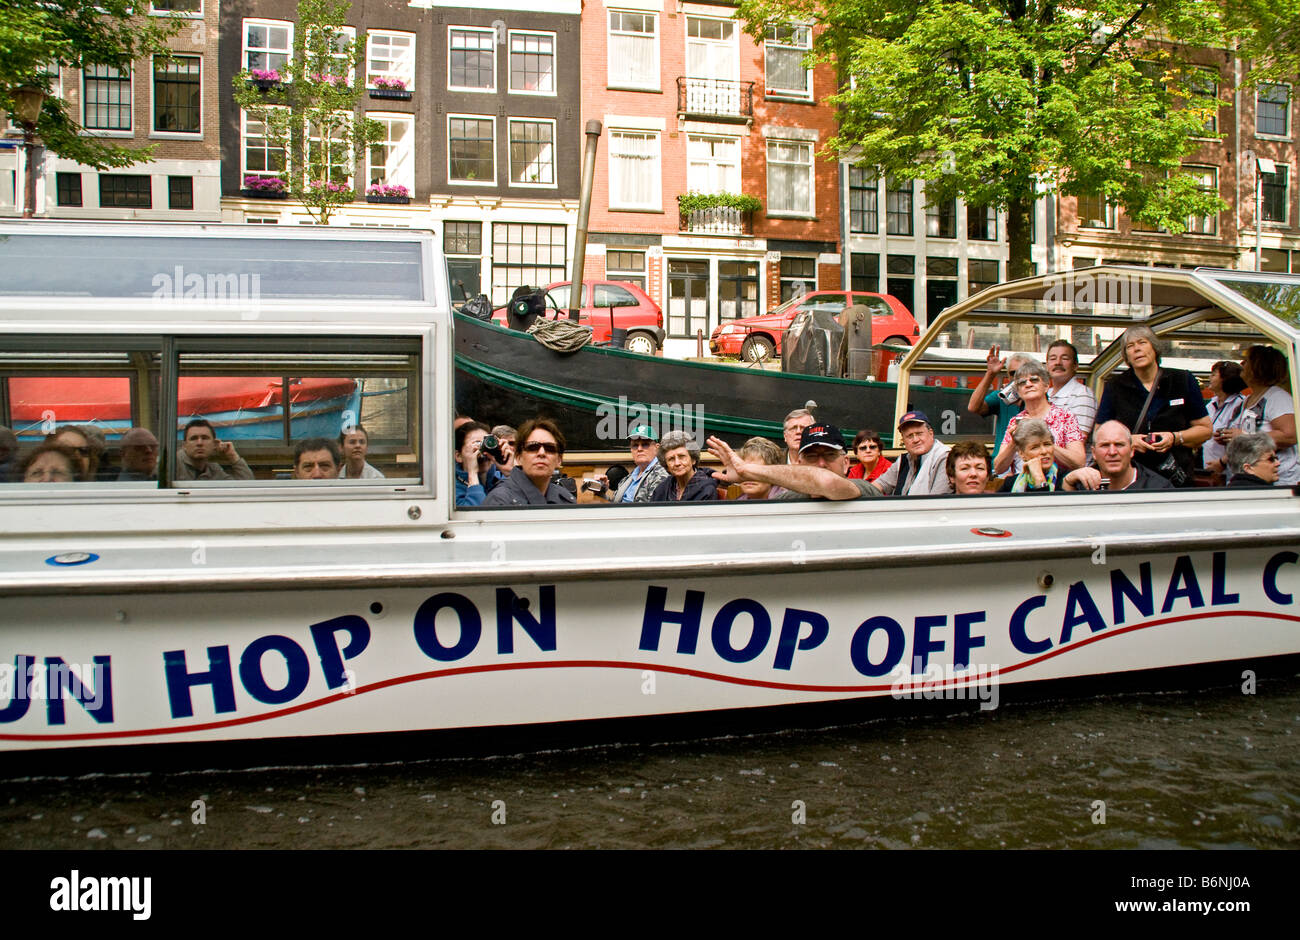 Amsterdam canal sightseeing cruise on Hop On Hop Off Cruises boat - Stock Image